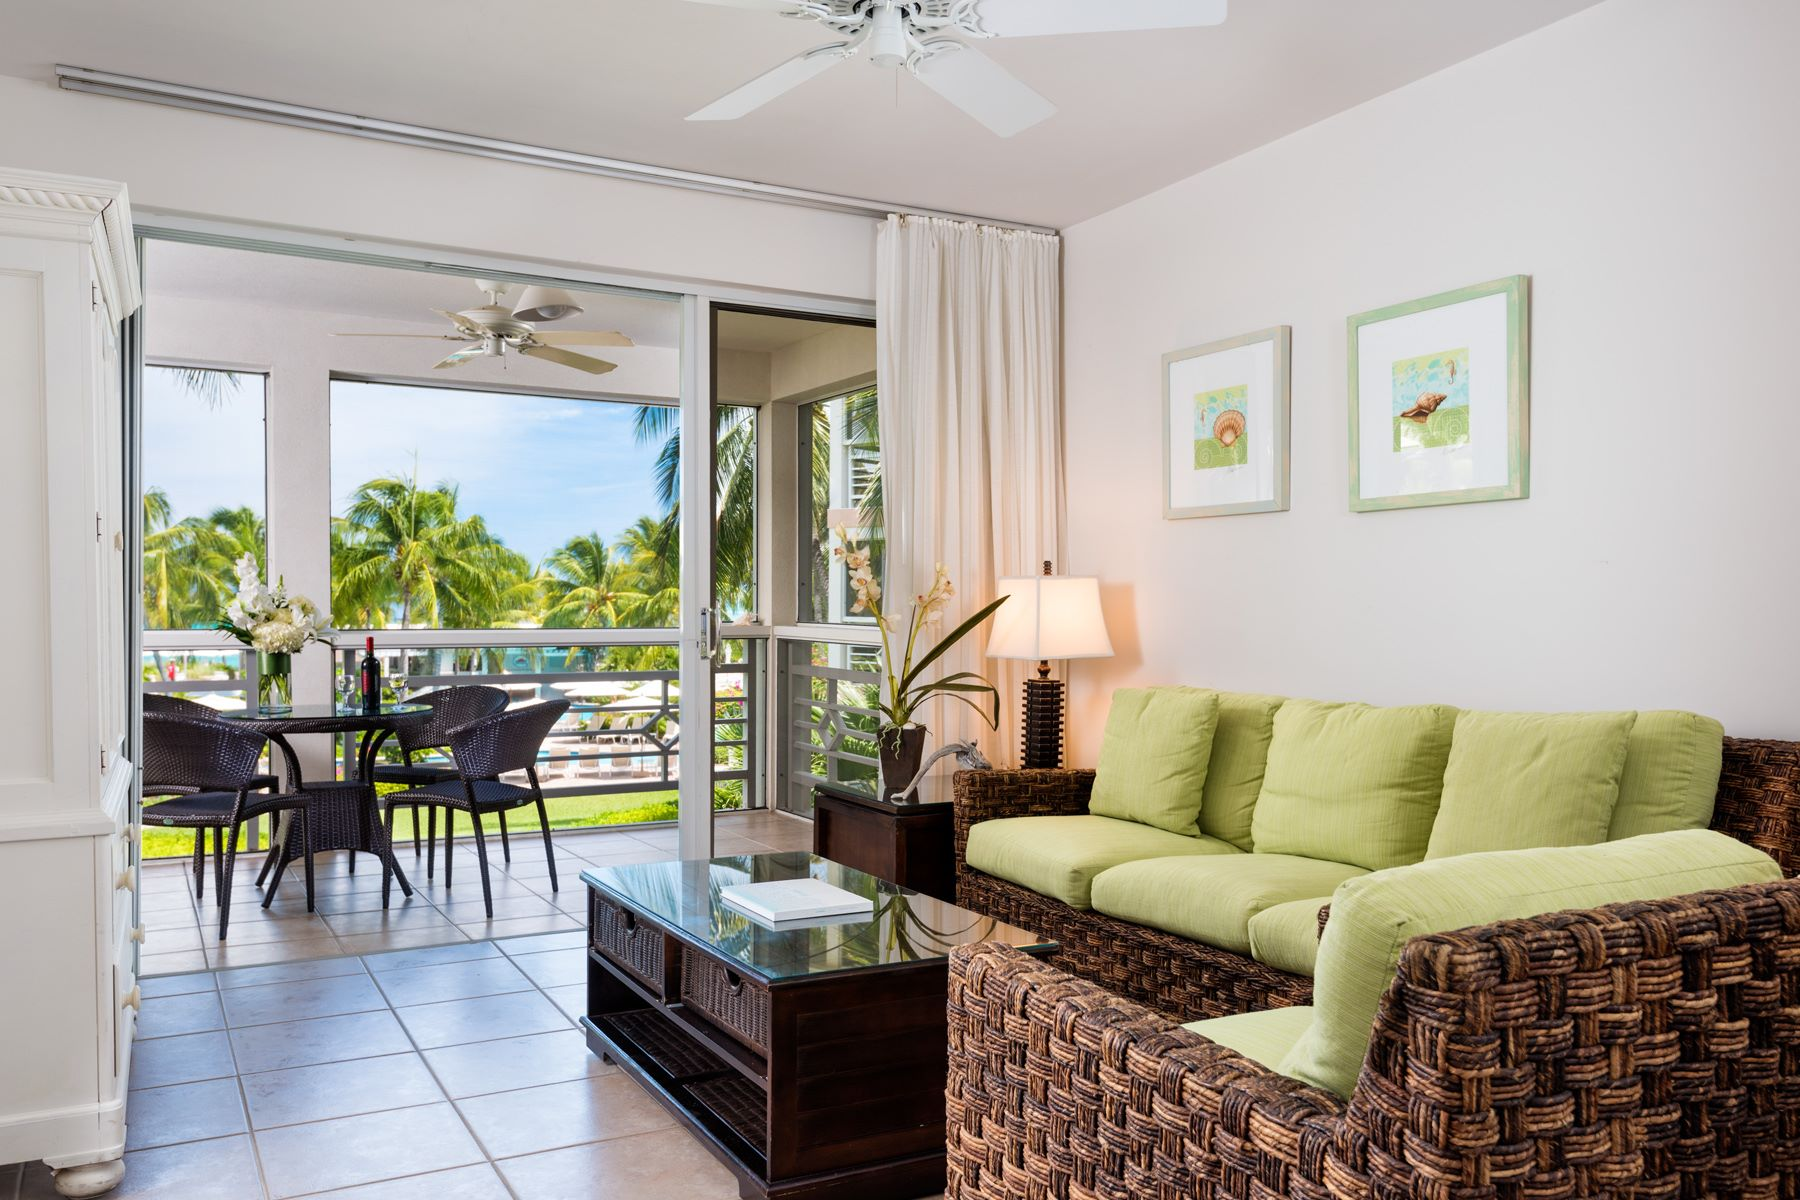 Condominium for Sale at Ocean Club West 726 Oceanfront Grace Bay, Providenciales TCI Turks And Caicos Islands